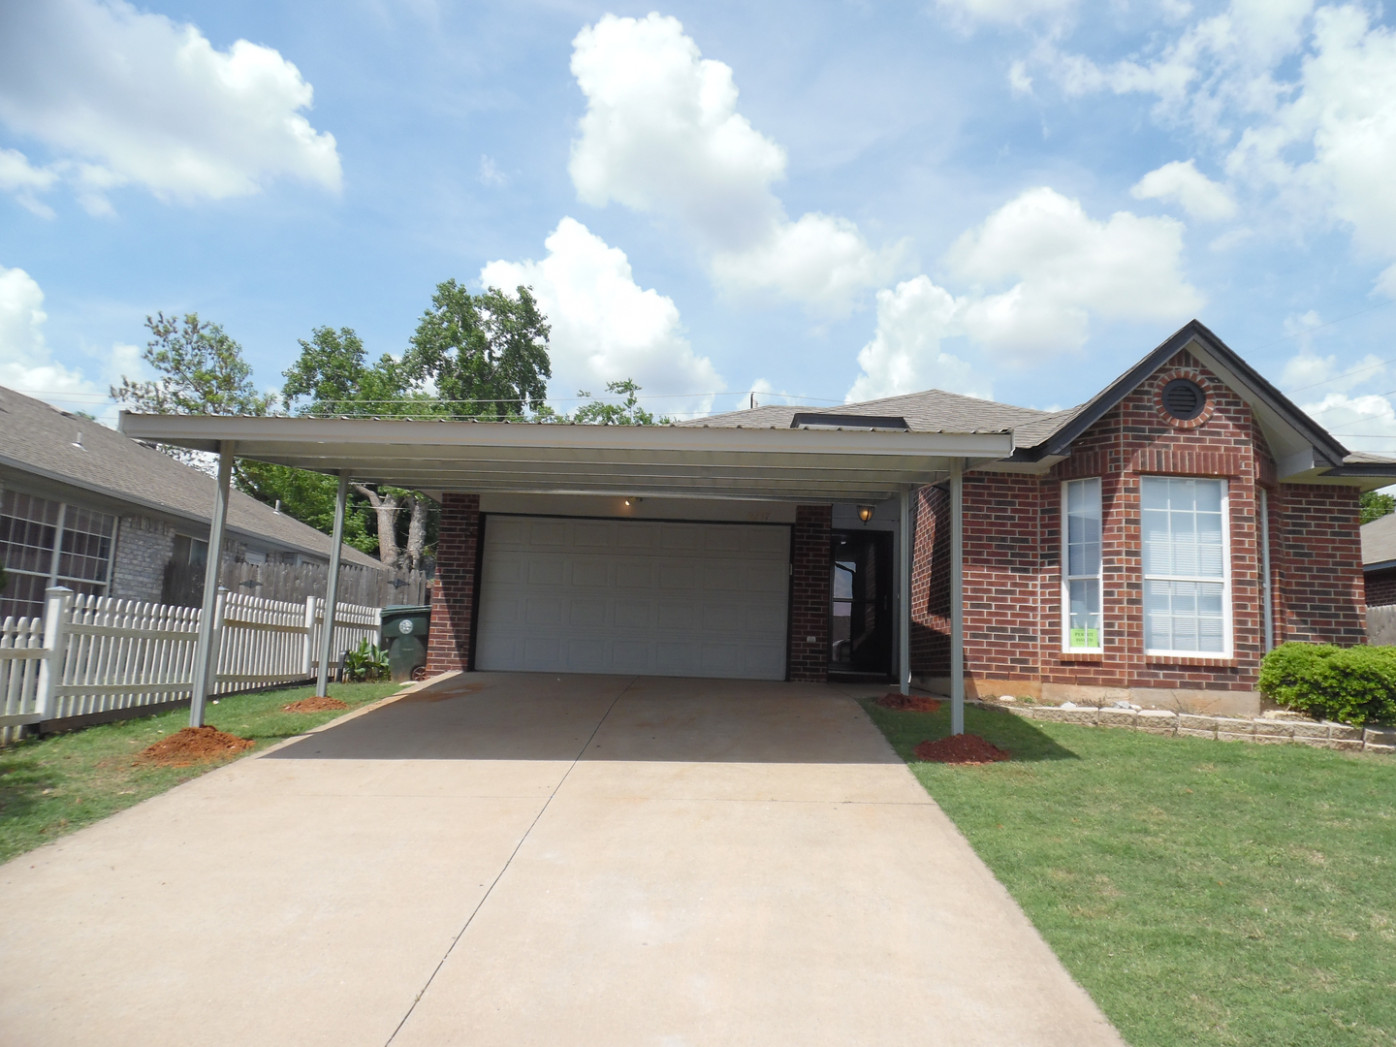 Carports Of Oklahoma Home Page Welcome Carport And Garage Difference